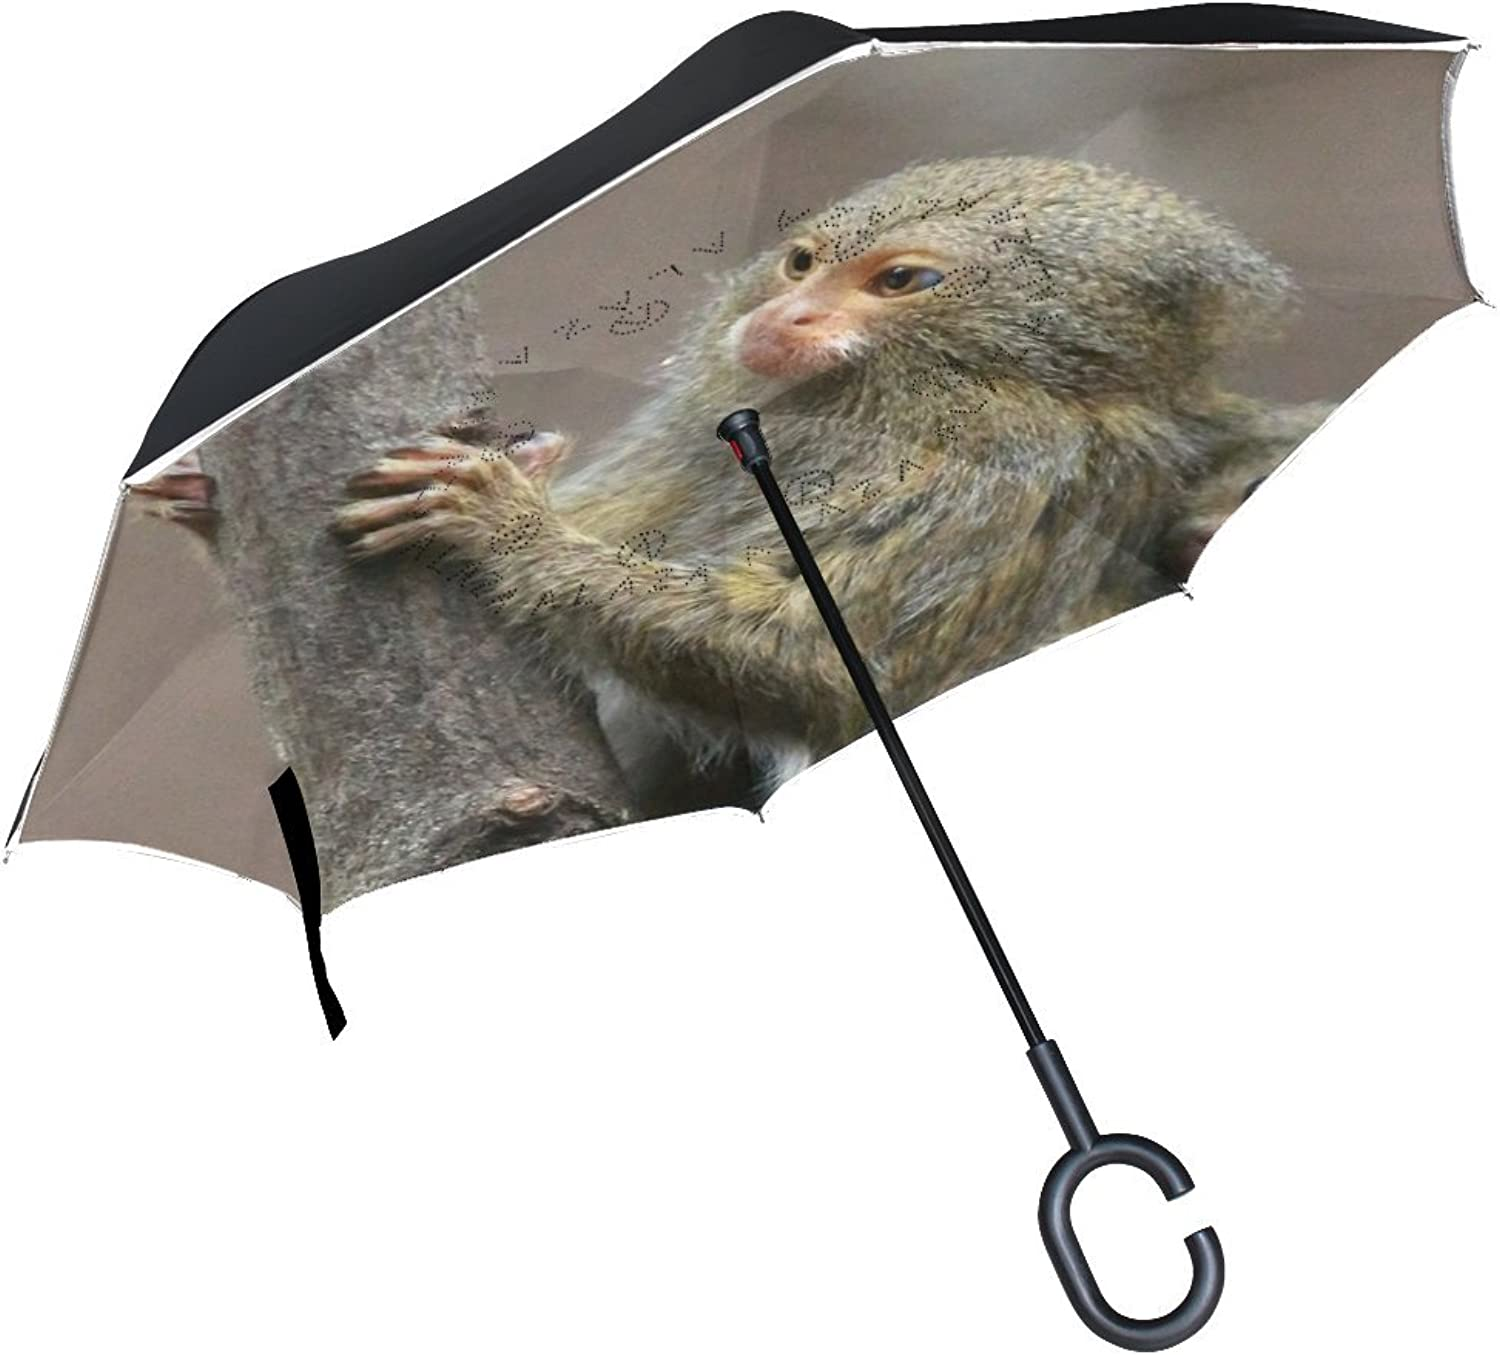 Animal Monkey Pygmy Marmoset Adorable Little Pet Cute Wild Simple Ingreened Umbrella Large Double Layer Outdoor Rain Sun Car Reversible Umbrella